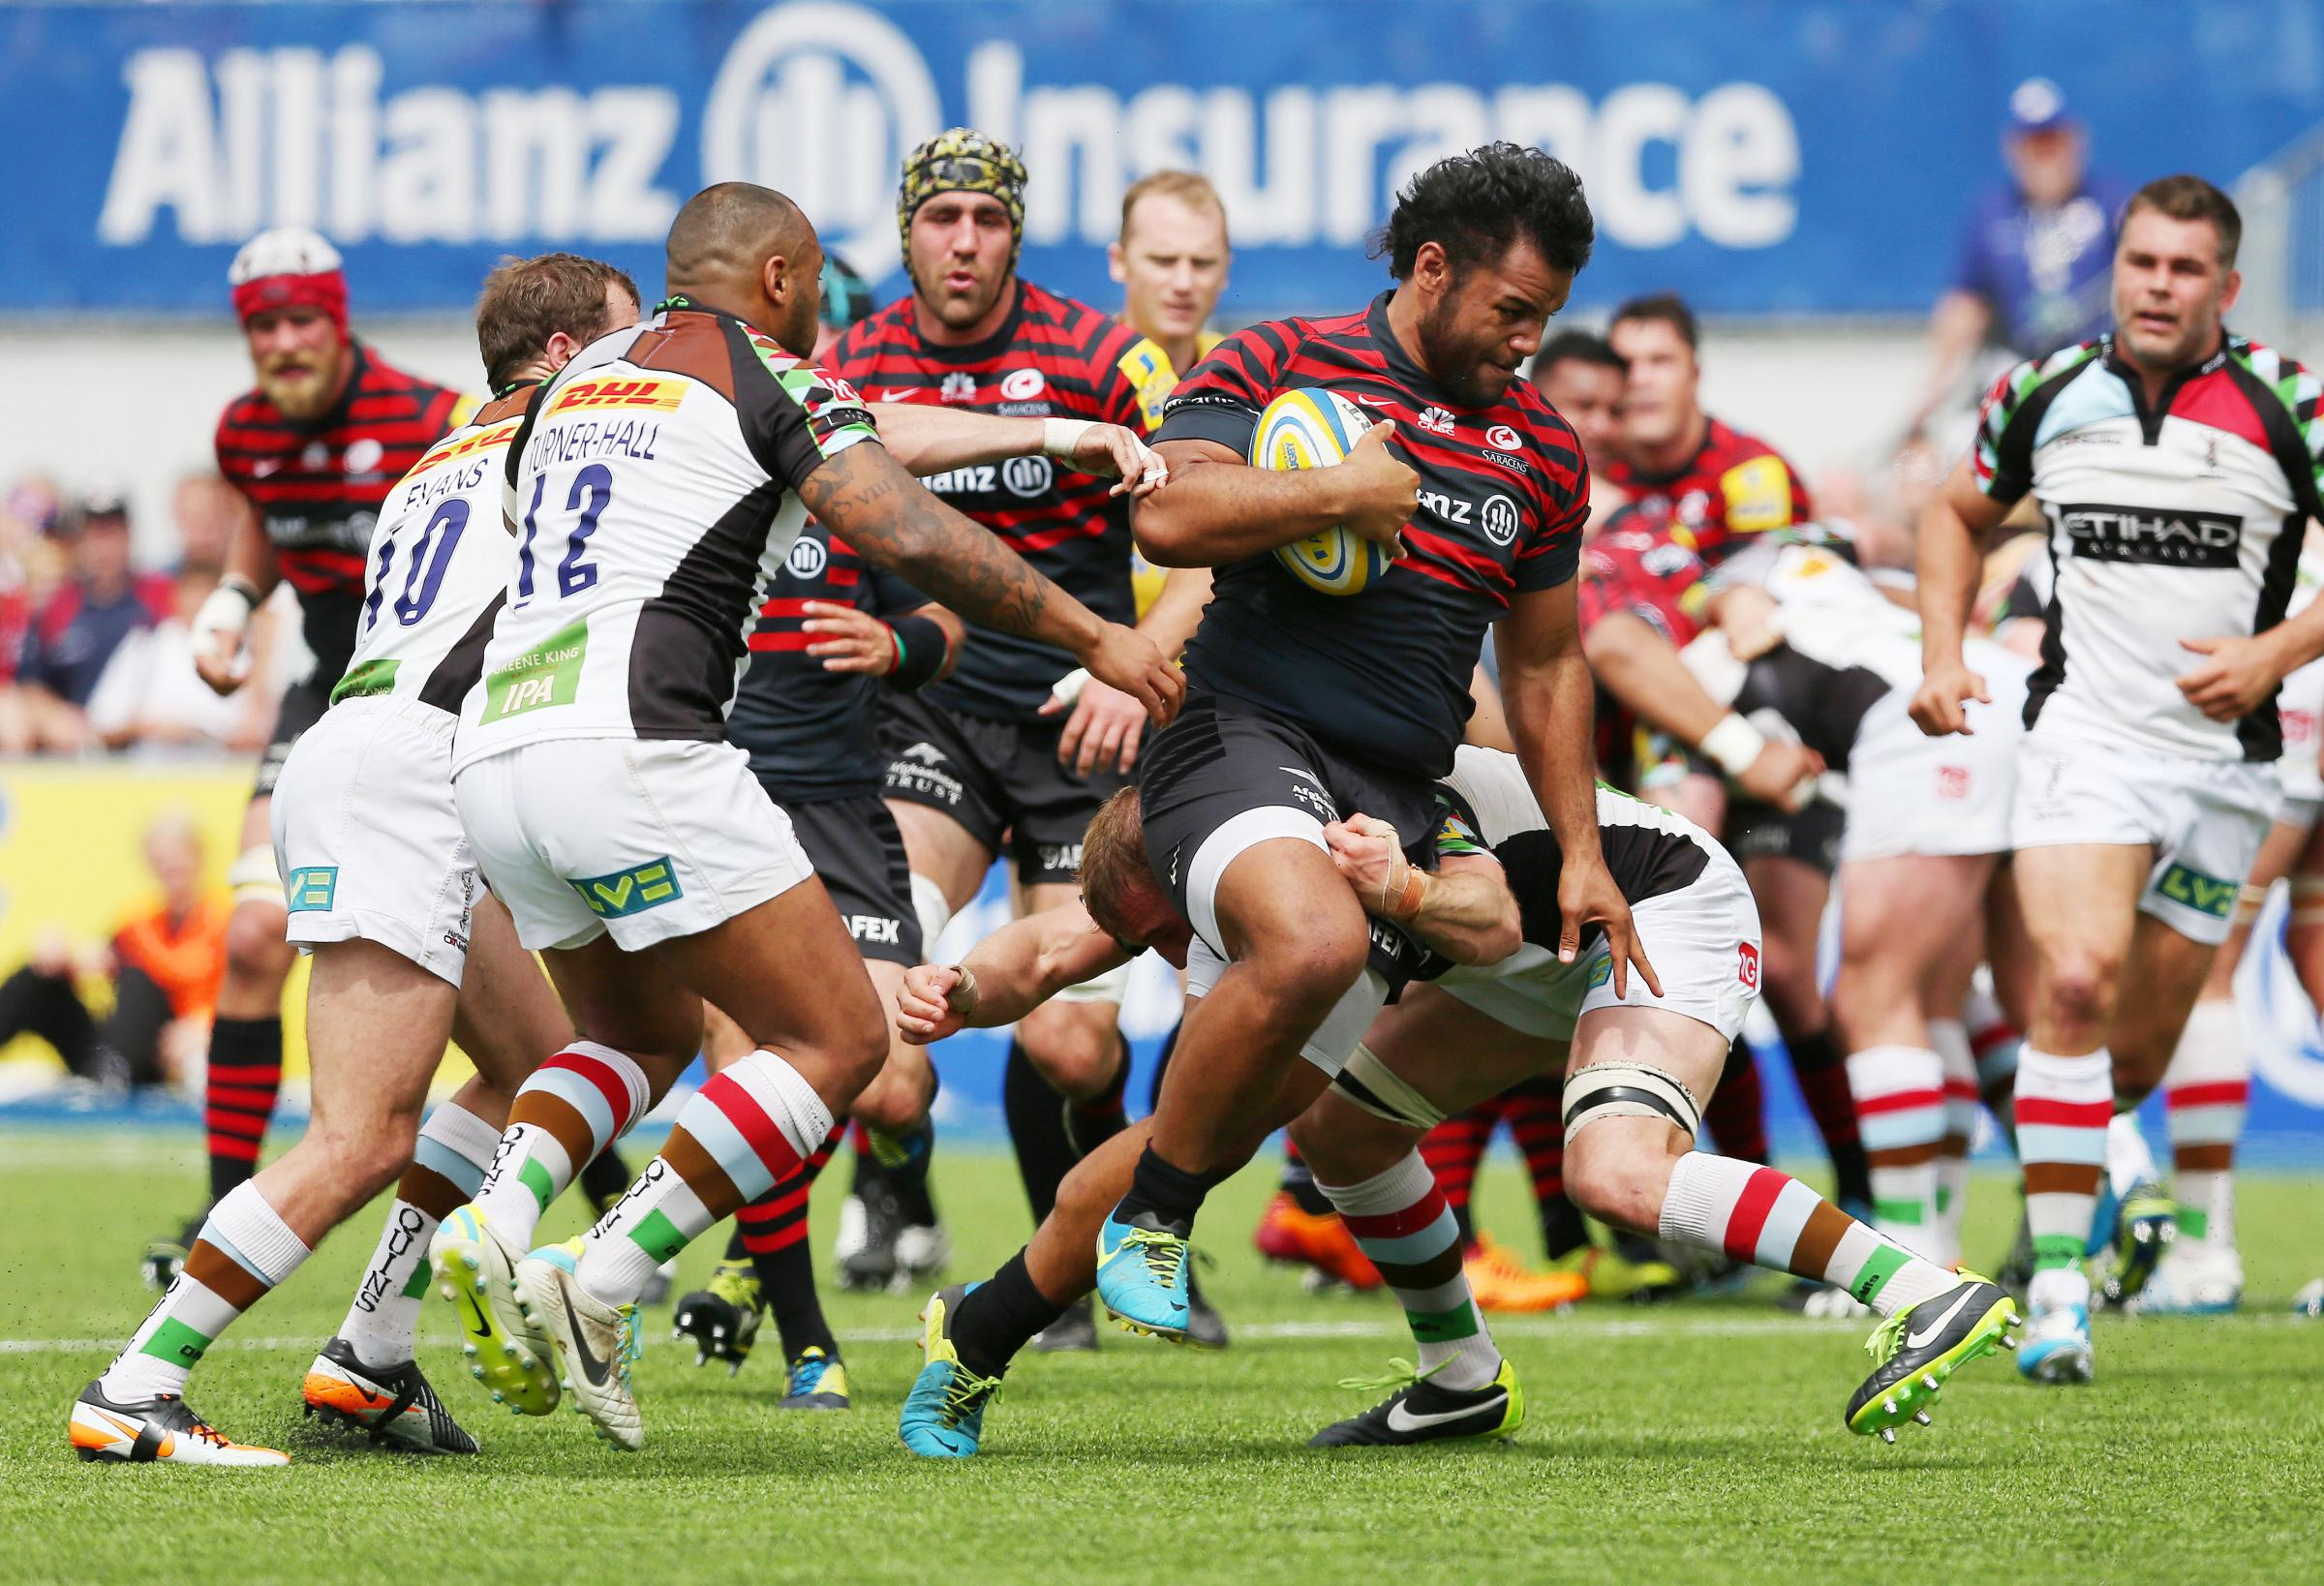 Billy Vunipola joined Saracens in September.